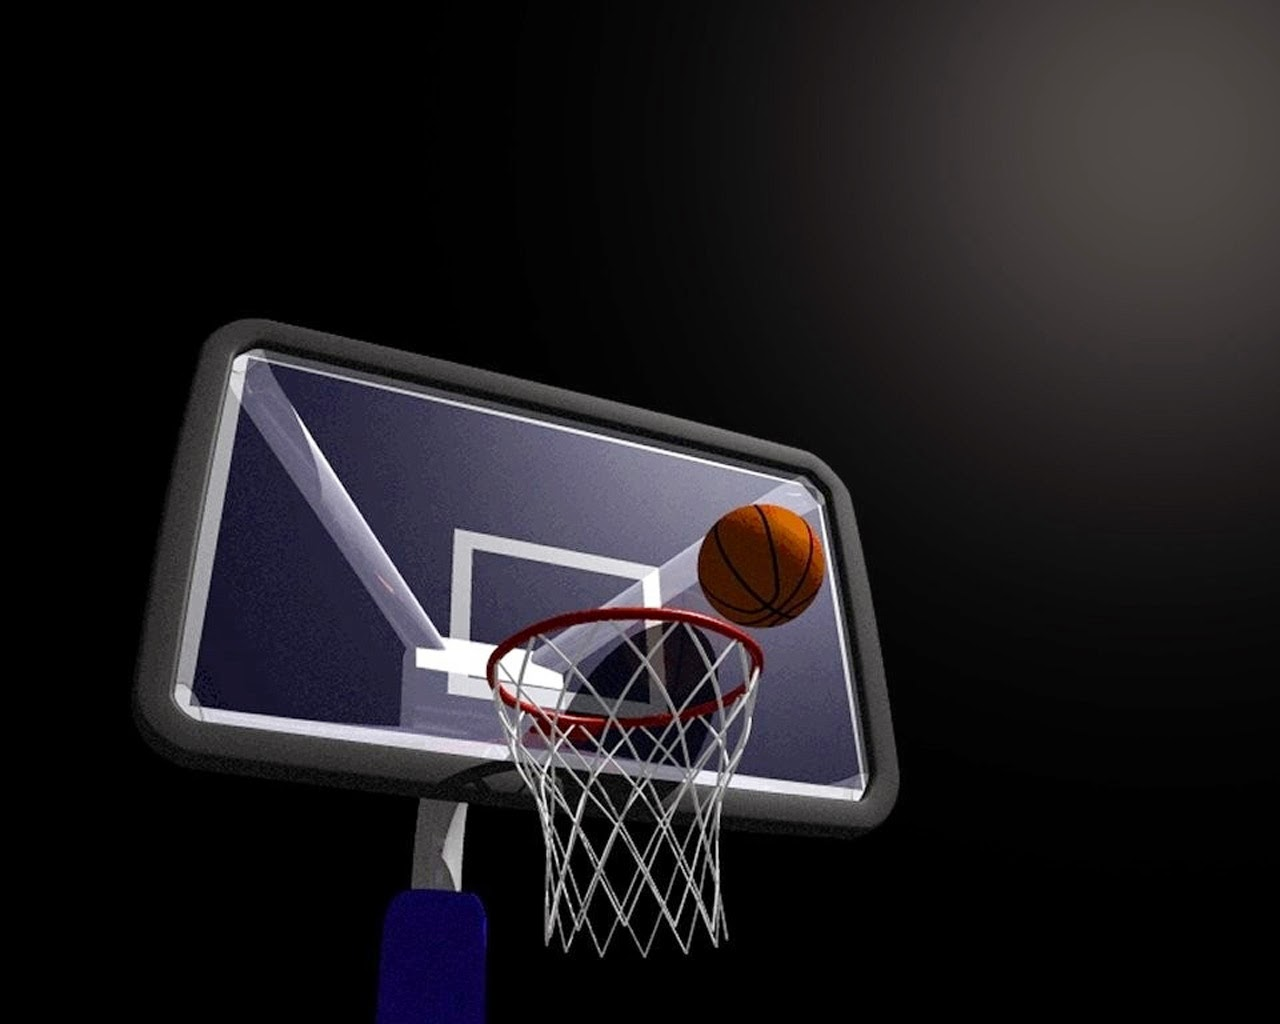 Wallpapers For Nike Basketball Wallpaper Backgrounds